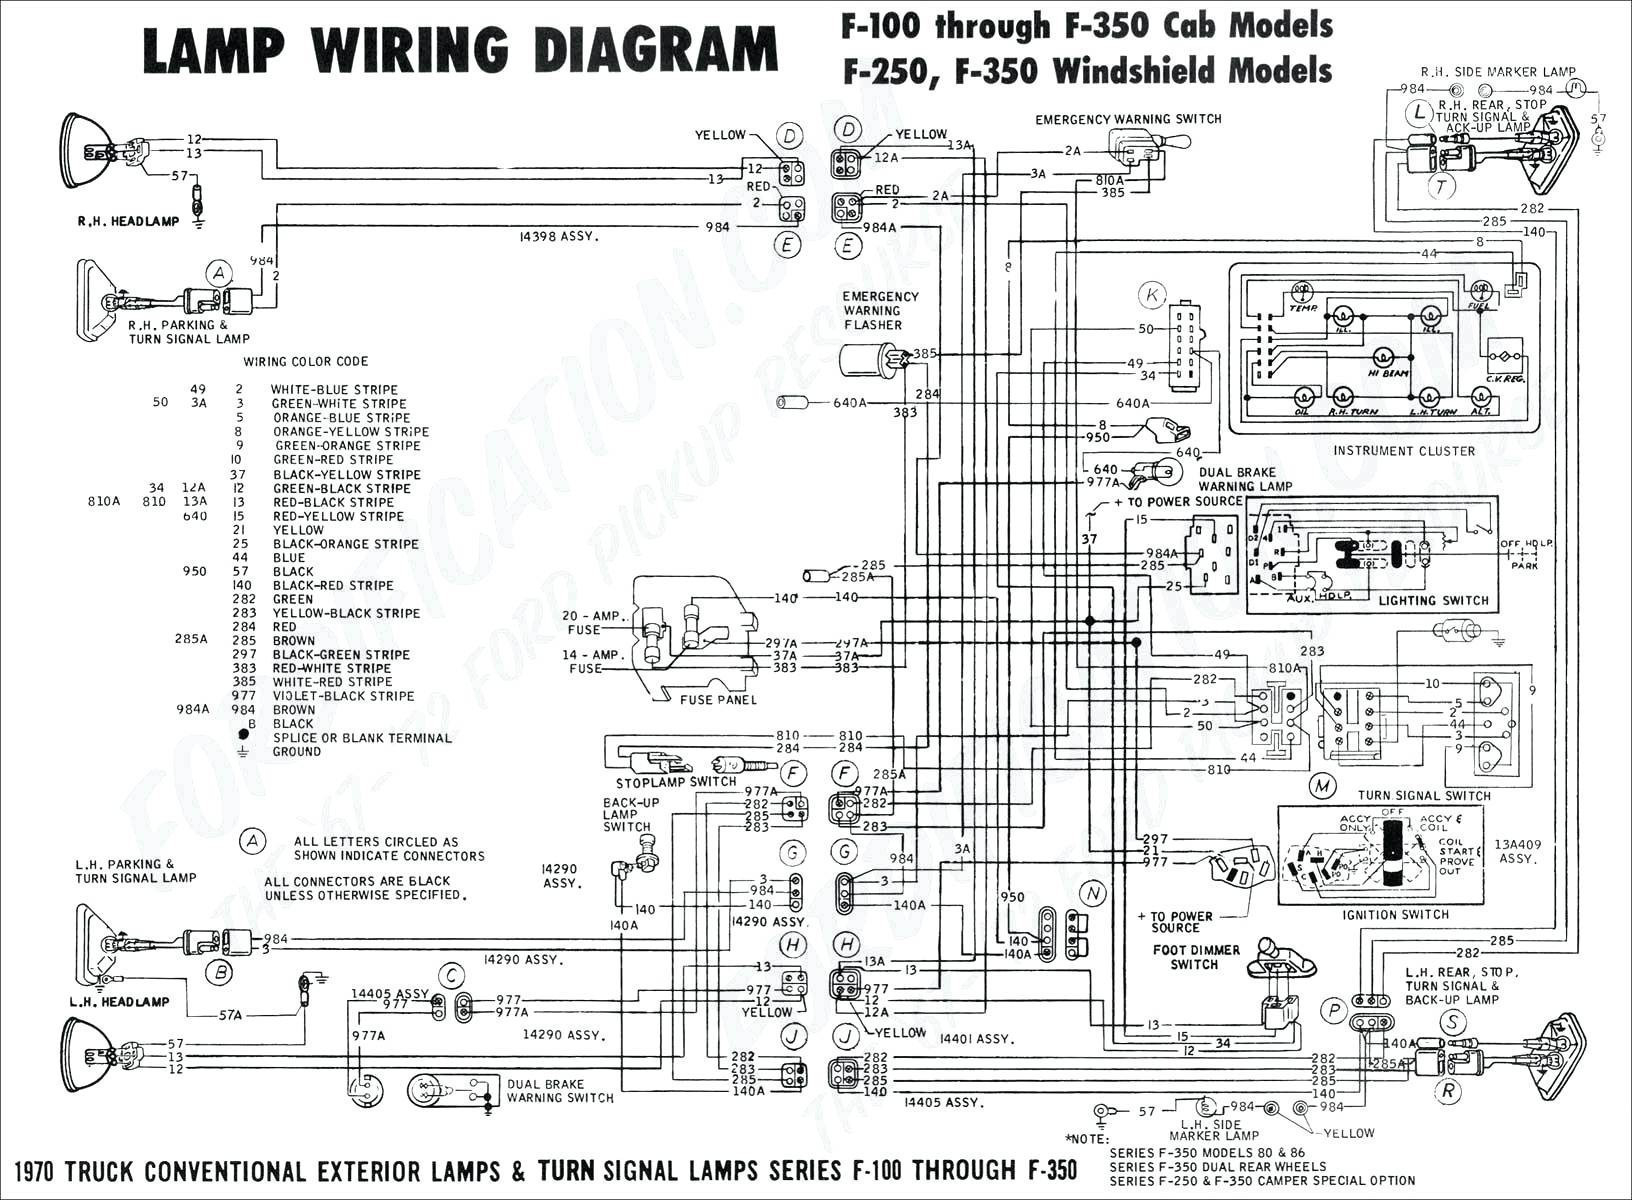 [DIAGRAM] 2014 R1200rt Wiring Diagram FULL Version HD